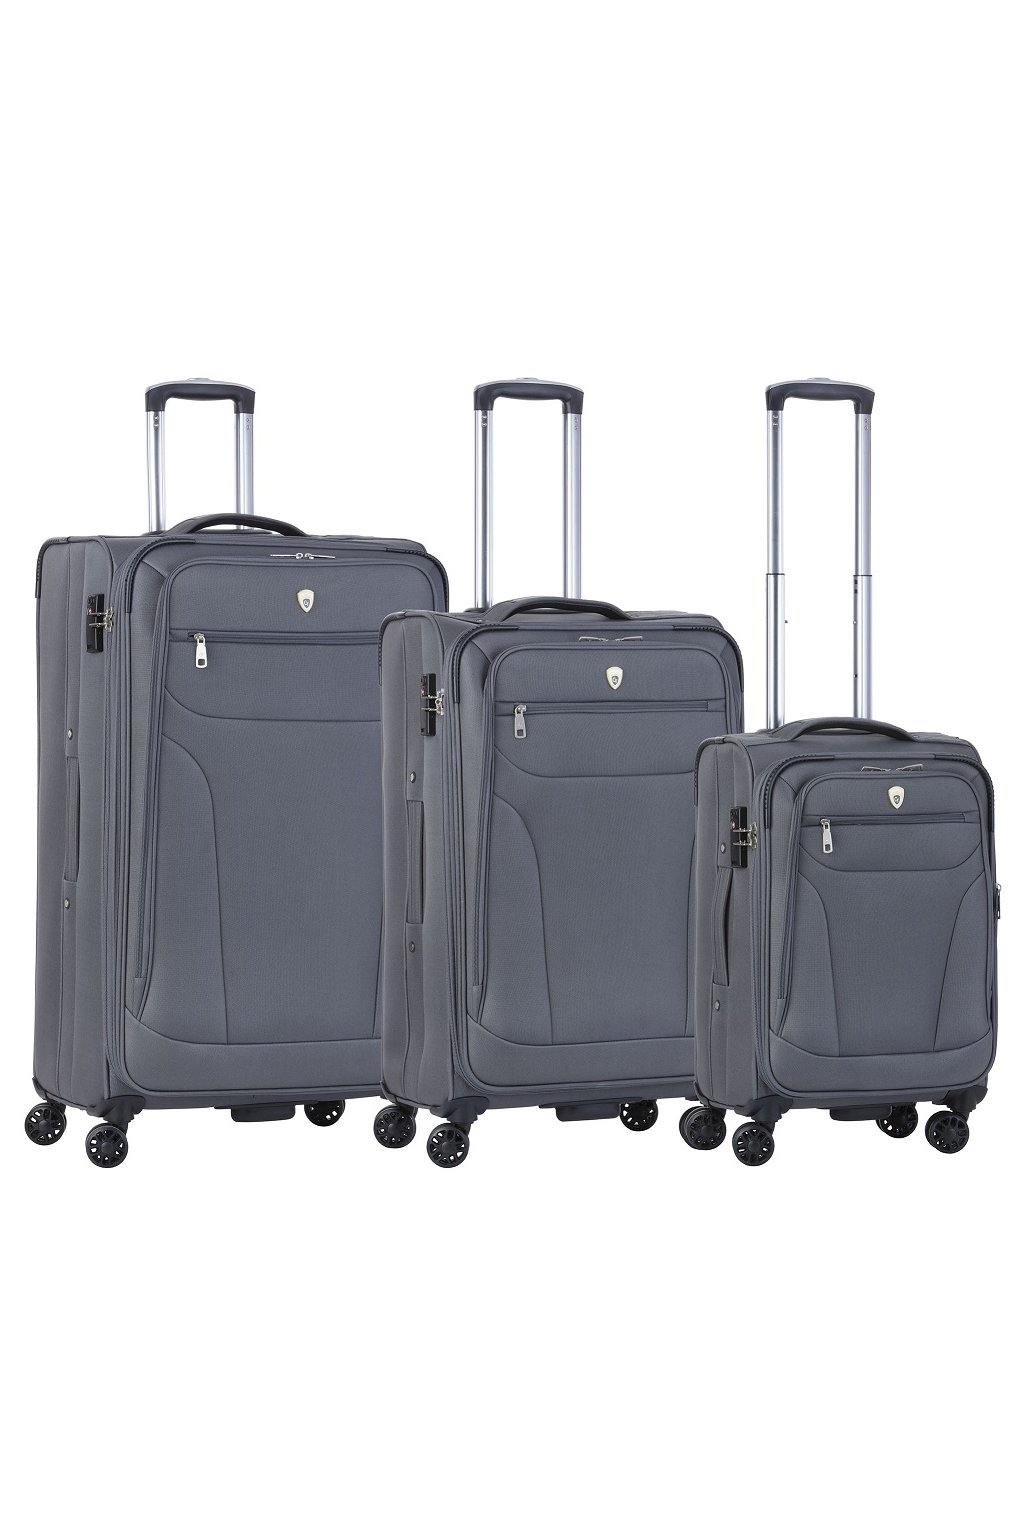 kufrland carryon cambridge grey (8)